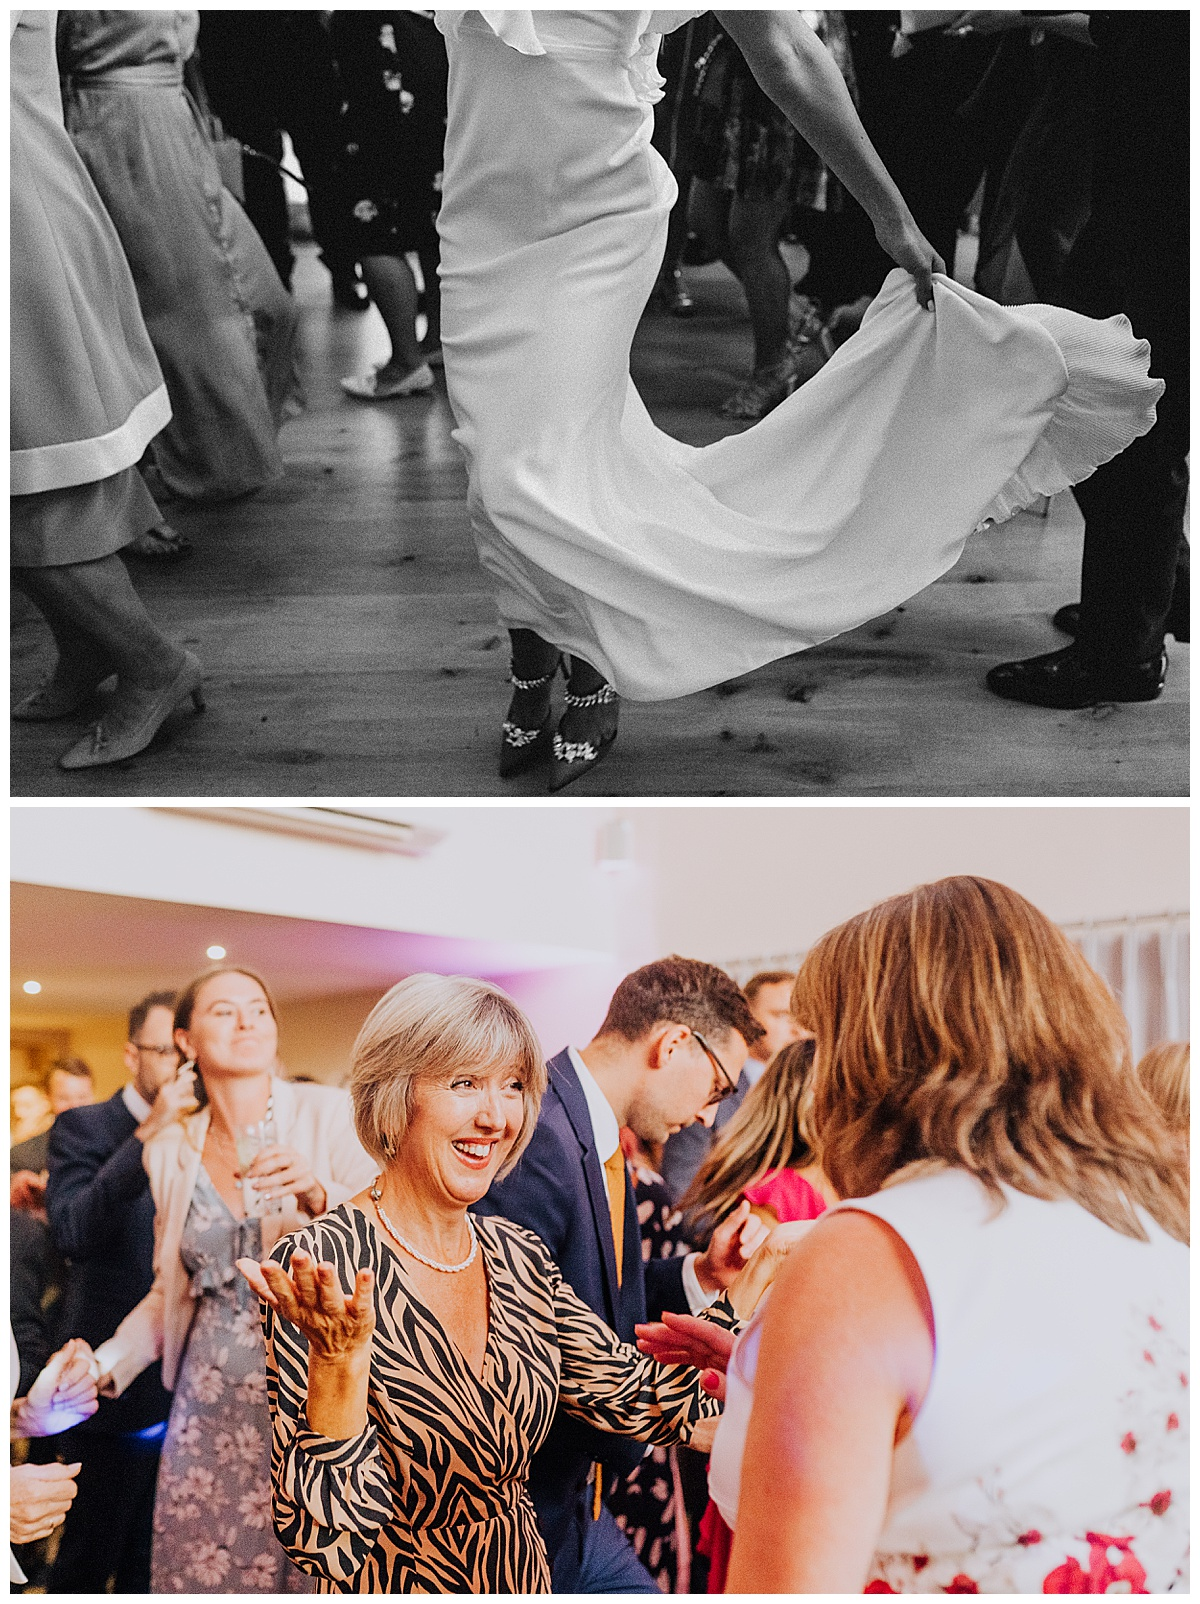 A stylish and chic wedding with a high fashion edge at Millbridge Court, Surrey